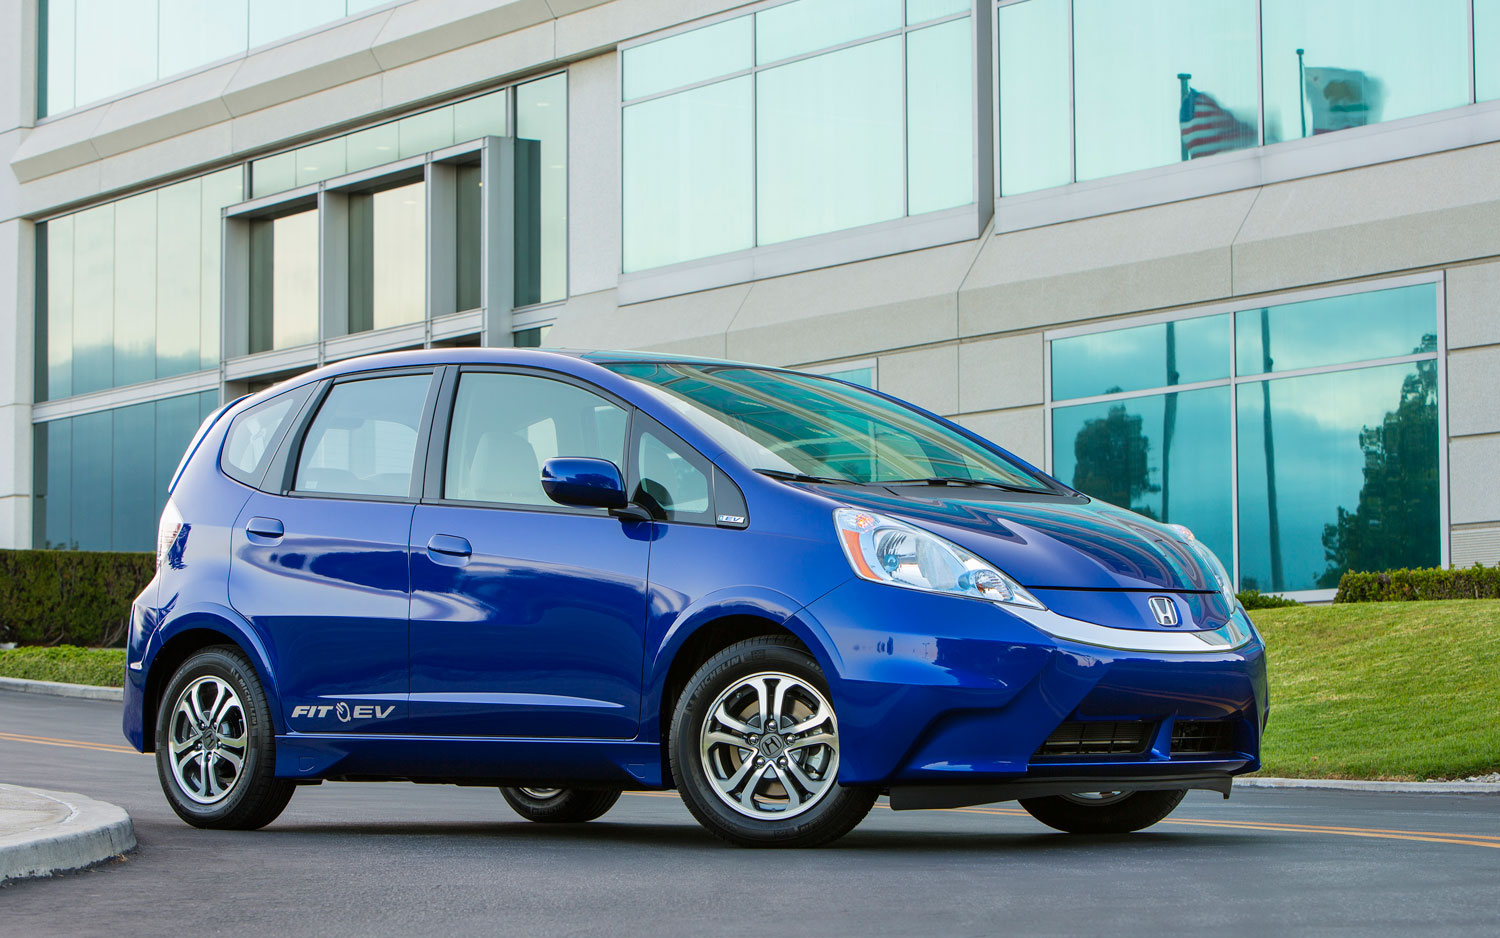 Honda Fit Ev To Lease For 389 A Month In Oregon California